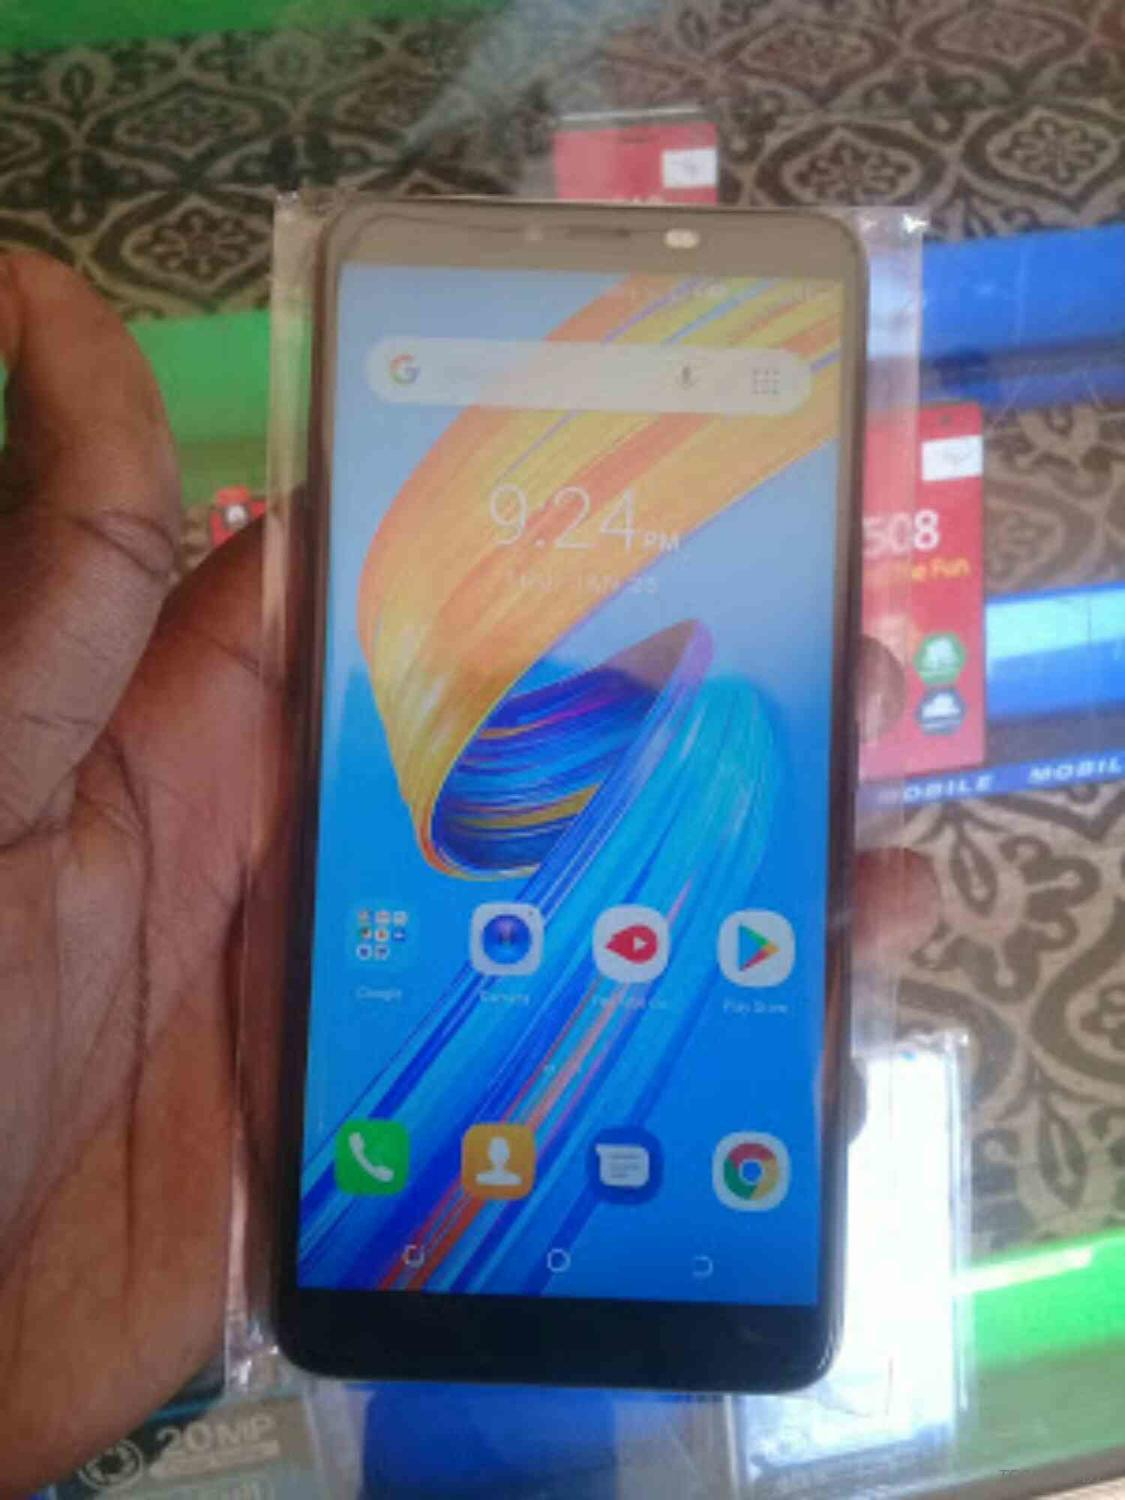 TECNO SPARK 2 KA7 FACTORY SIGNED FIRMWARE FLASH FILE - TECNO MOBILE